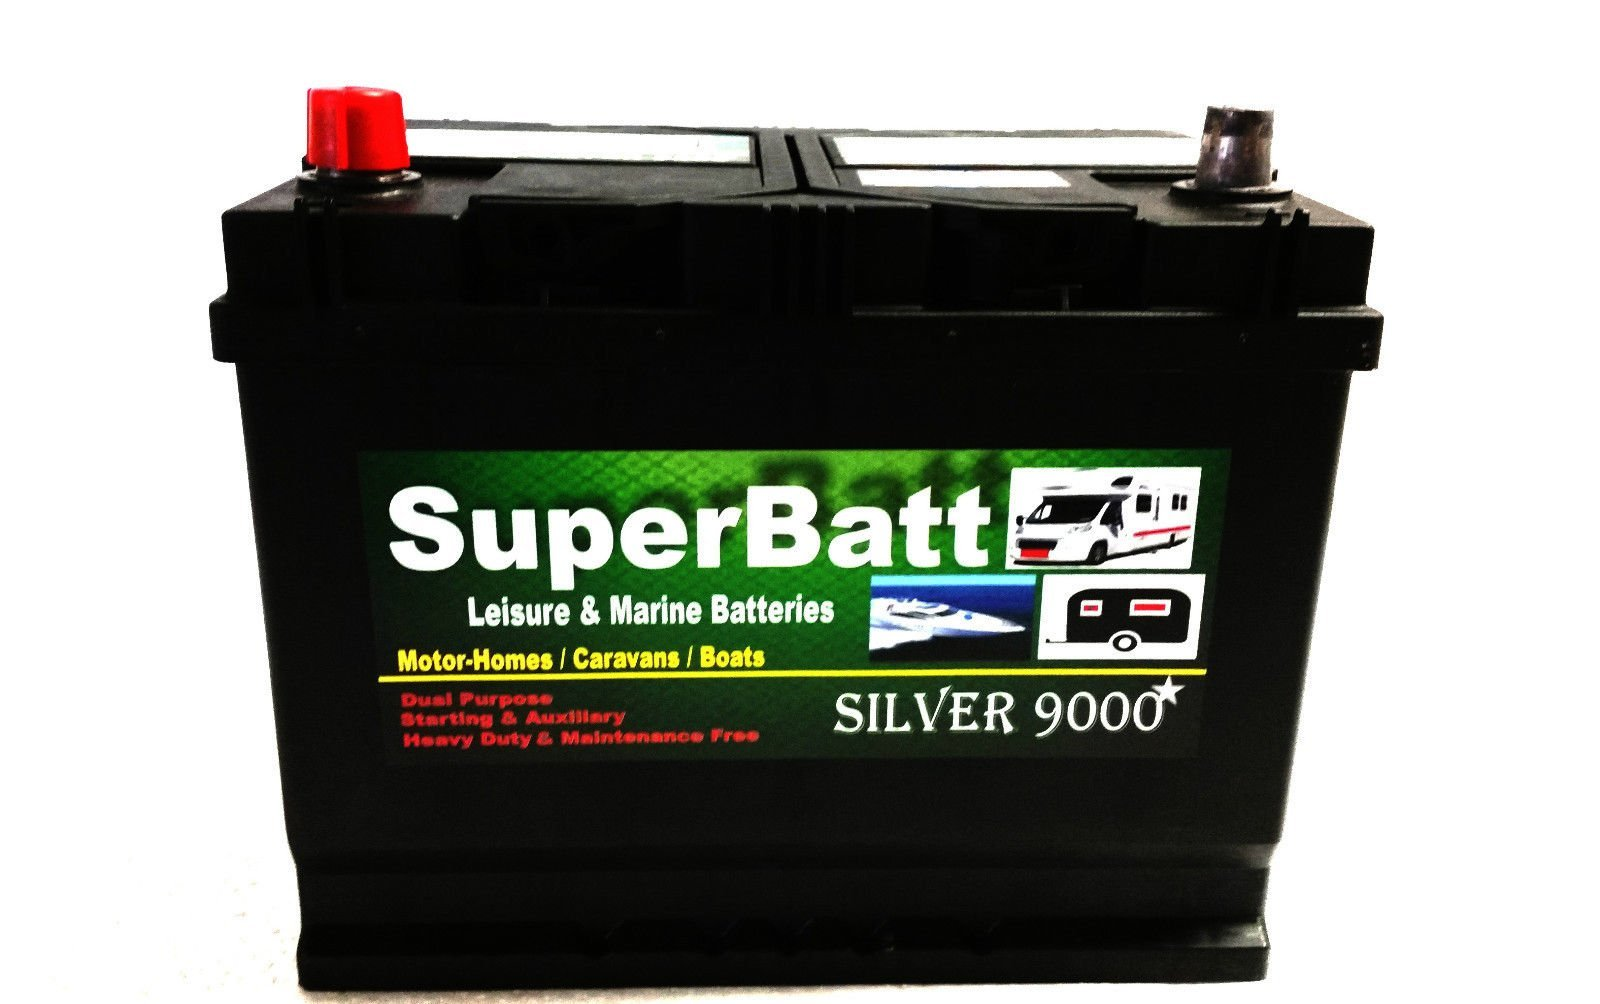 SuperBatt 12V 85AH CB22MF Leisure Battery Caravan Motorhome Marine Boat